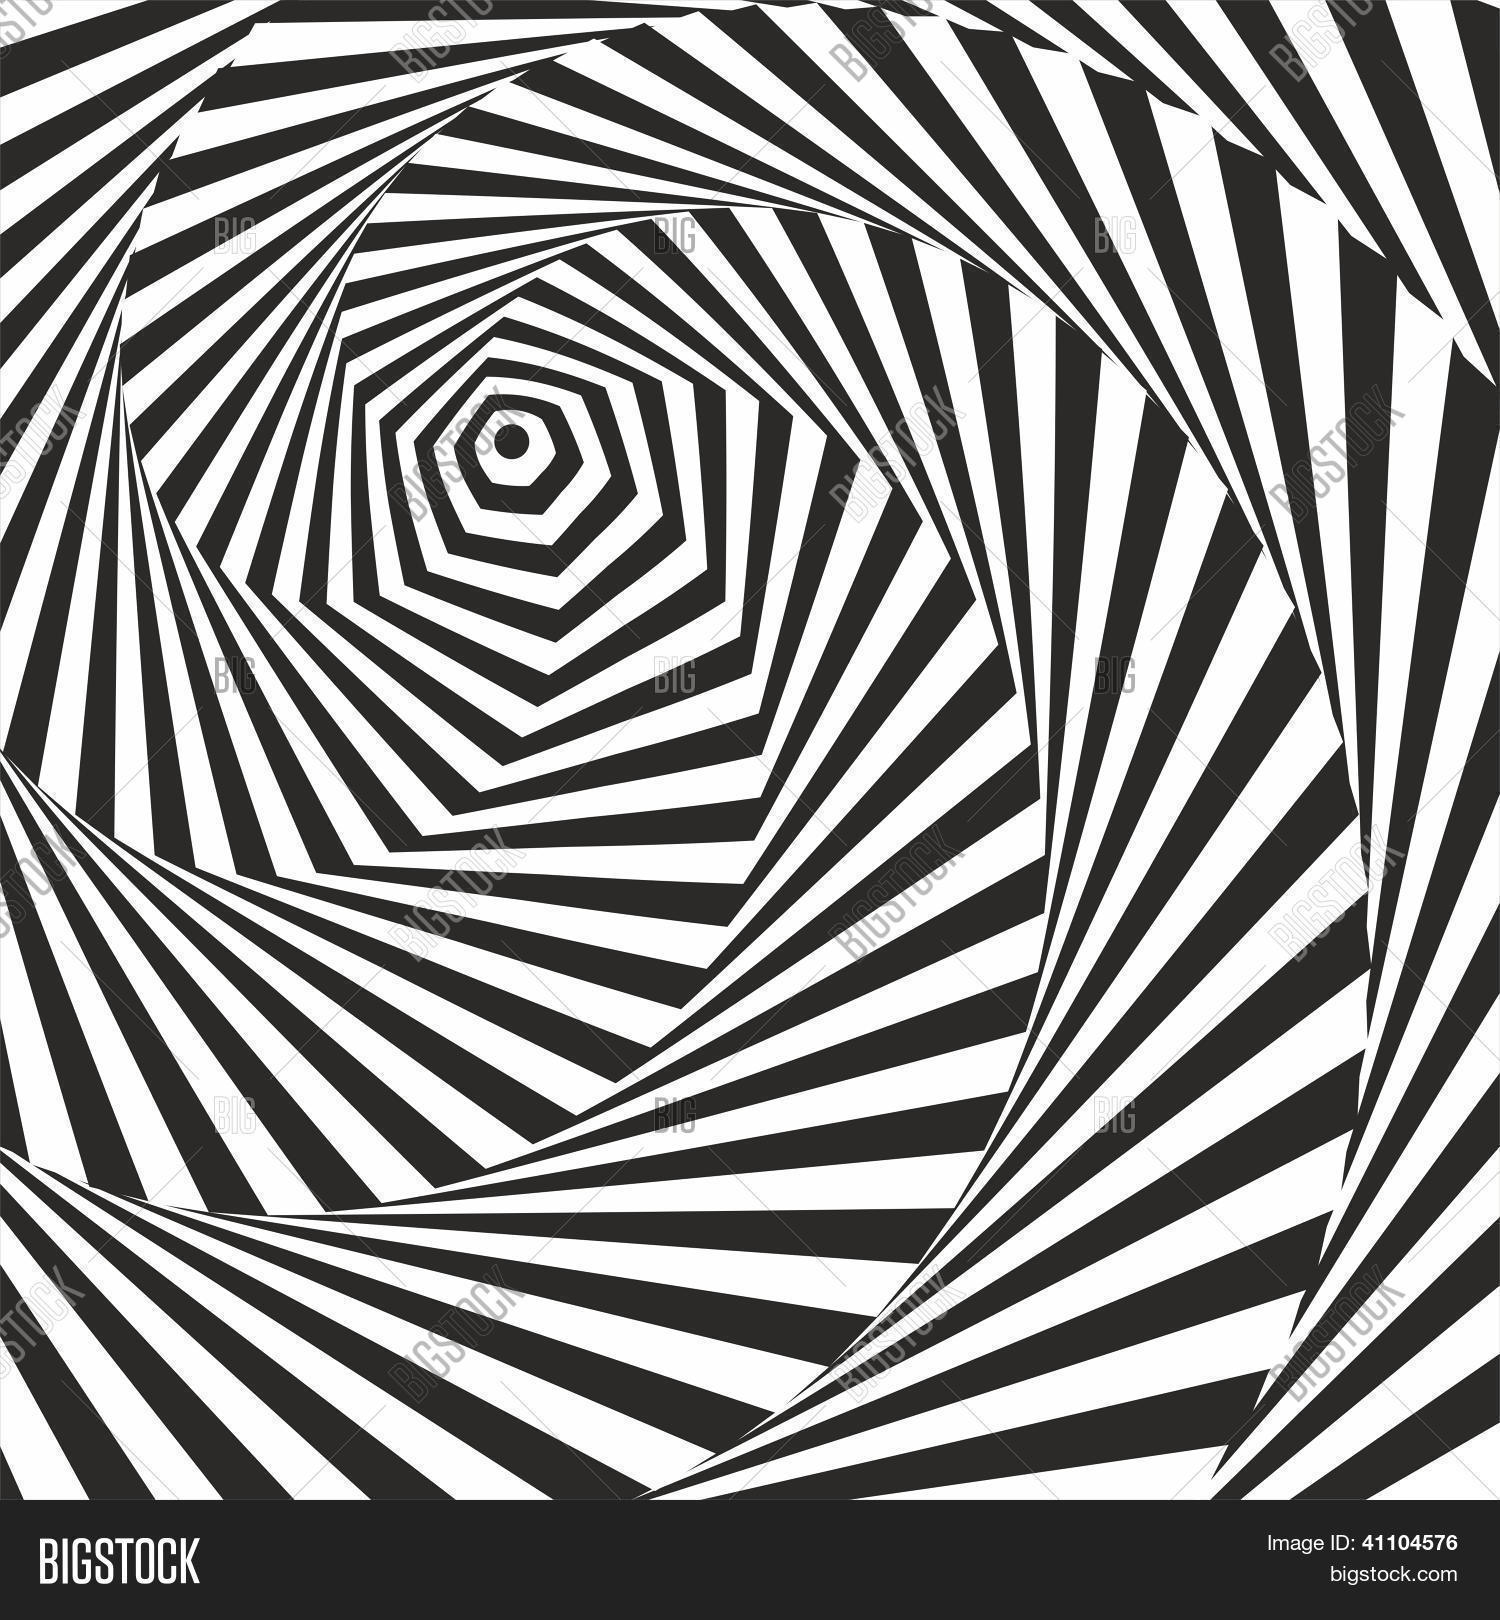 animated optical illusions template - black white optical illusion vector photo bigstock